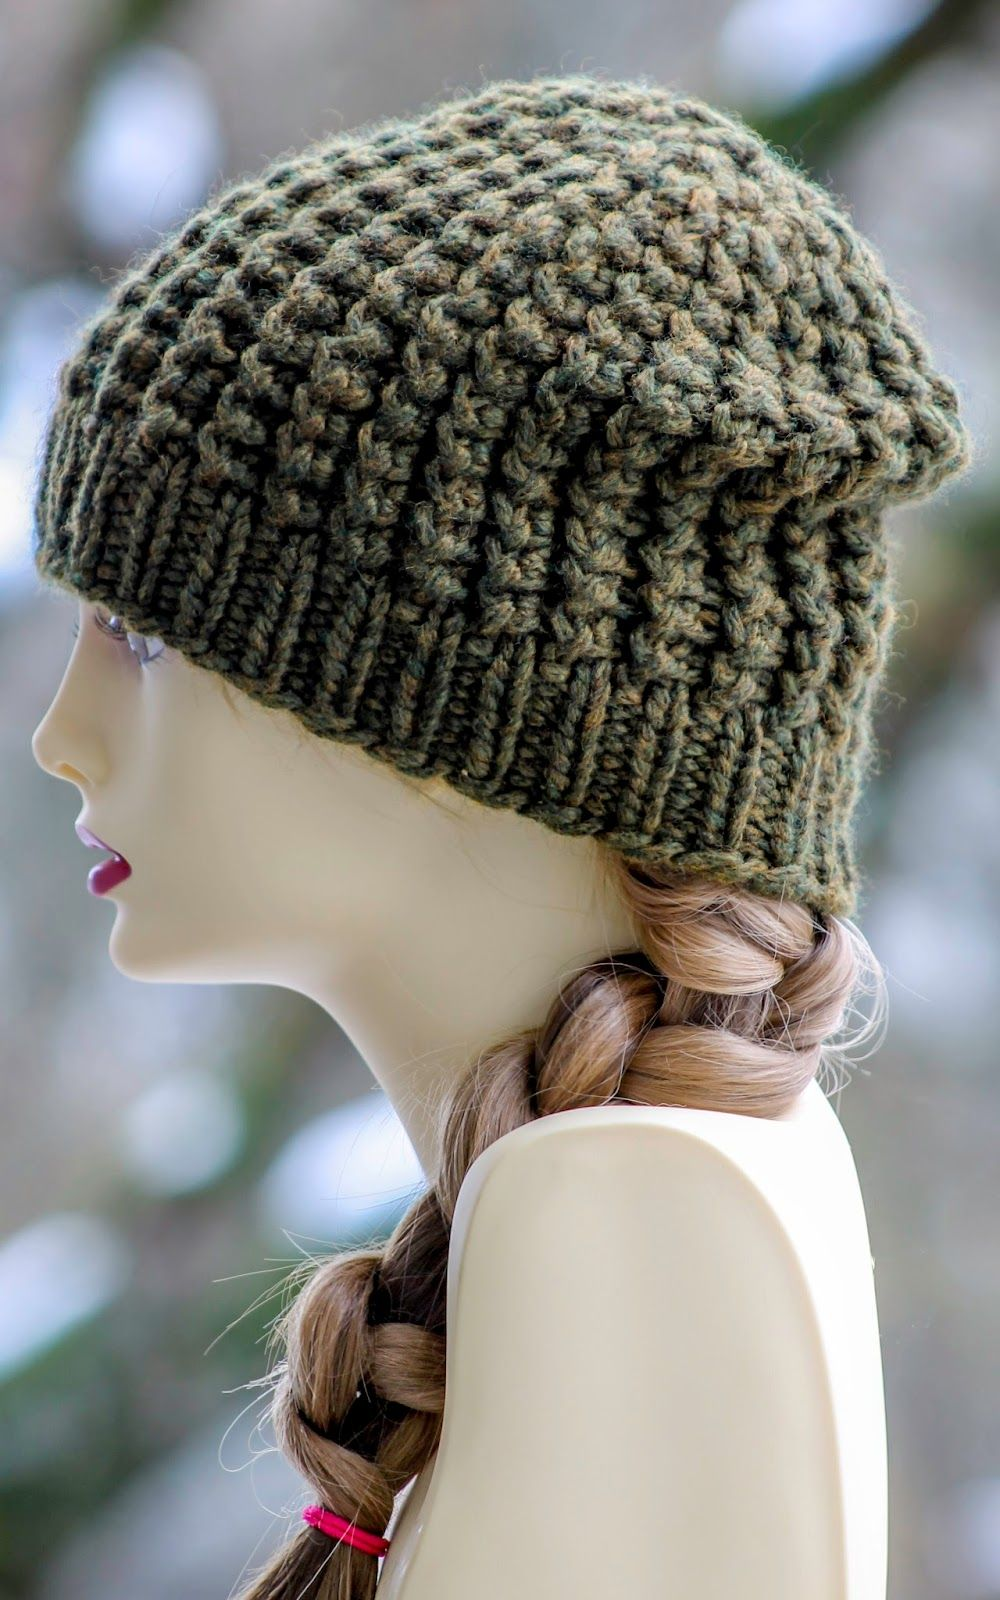 Super Baby Beanie (With images) | Beanie knitting patterns ...